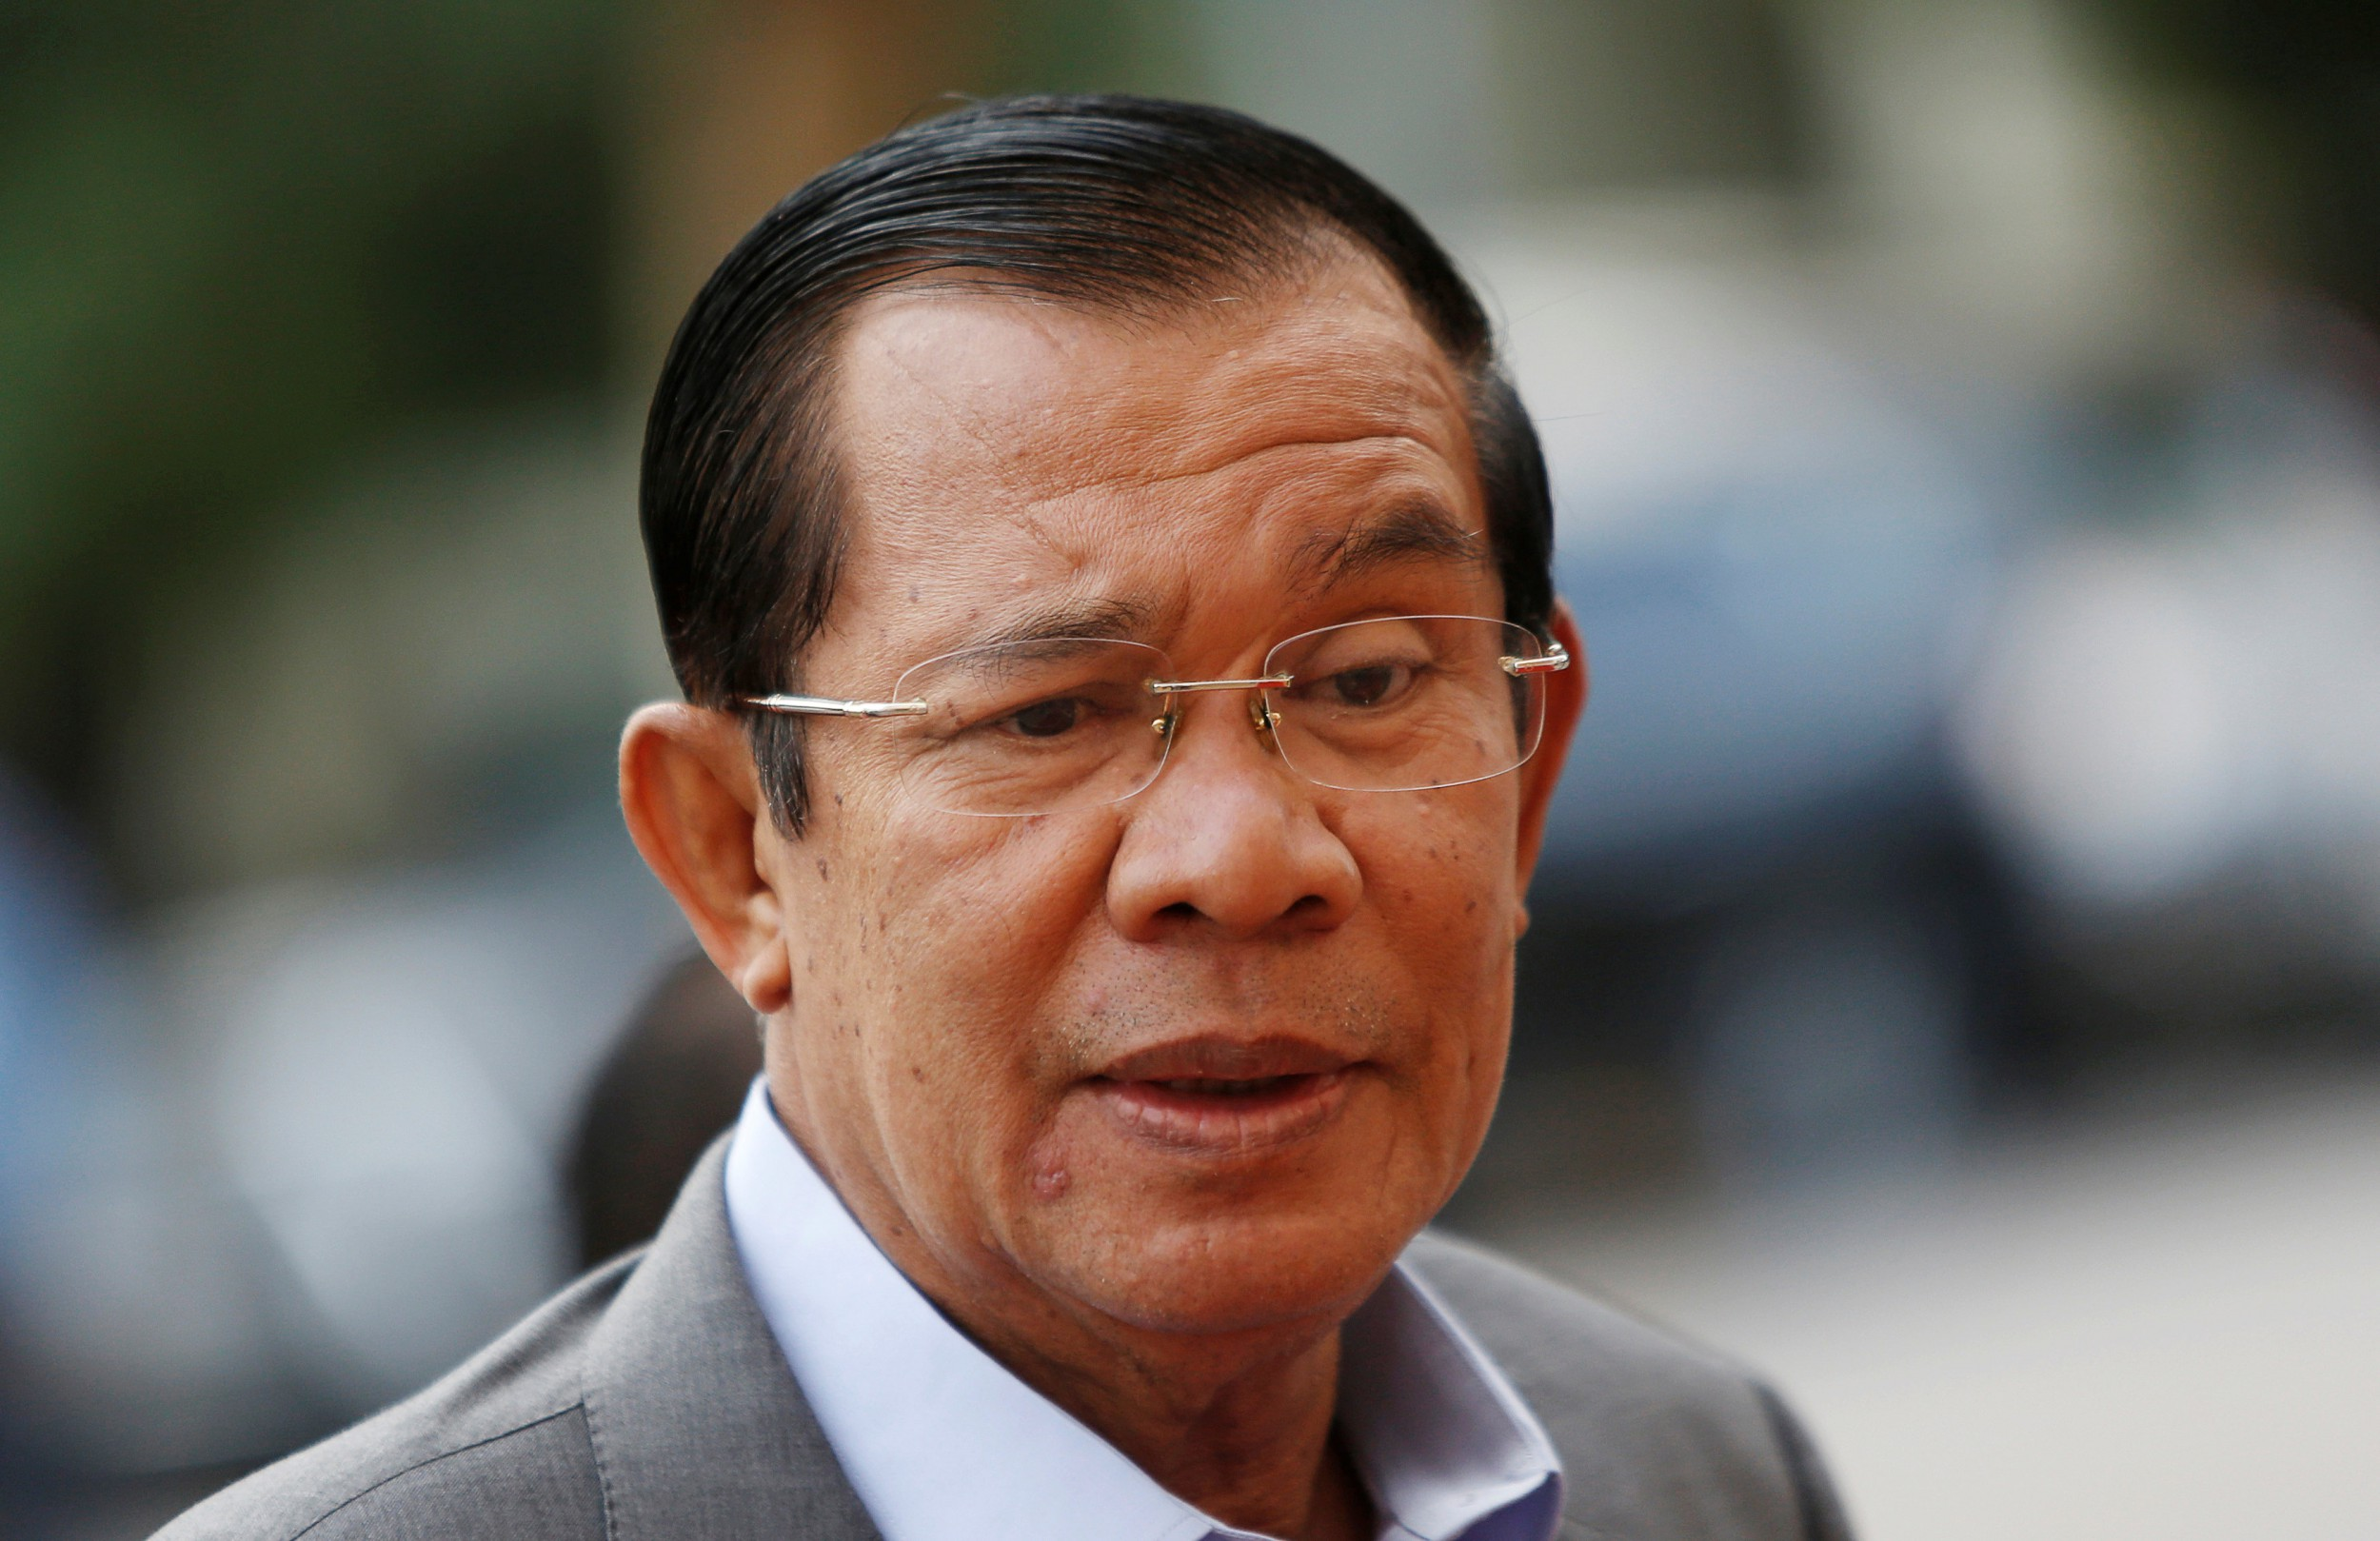 Cambodian PM Rebukes Media, Accuses Some of Fabricating Stories